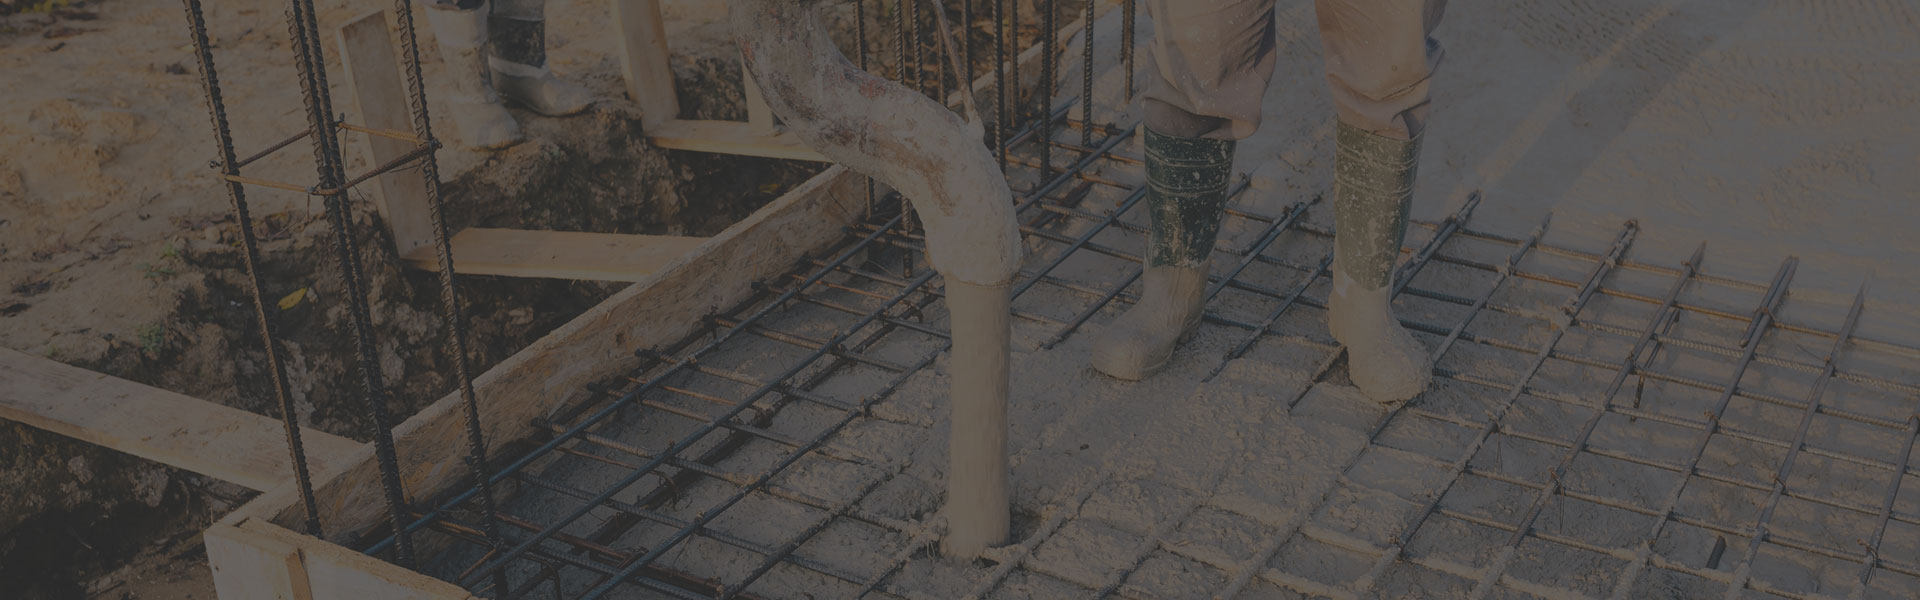 Professional concrete mixing and pouring